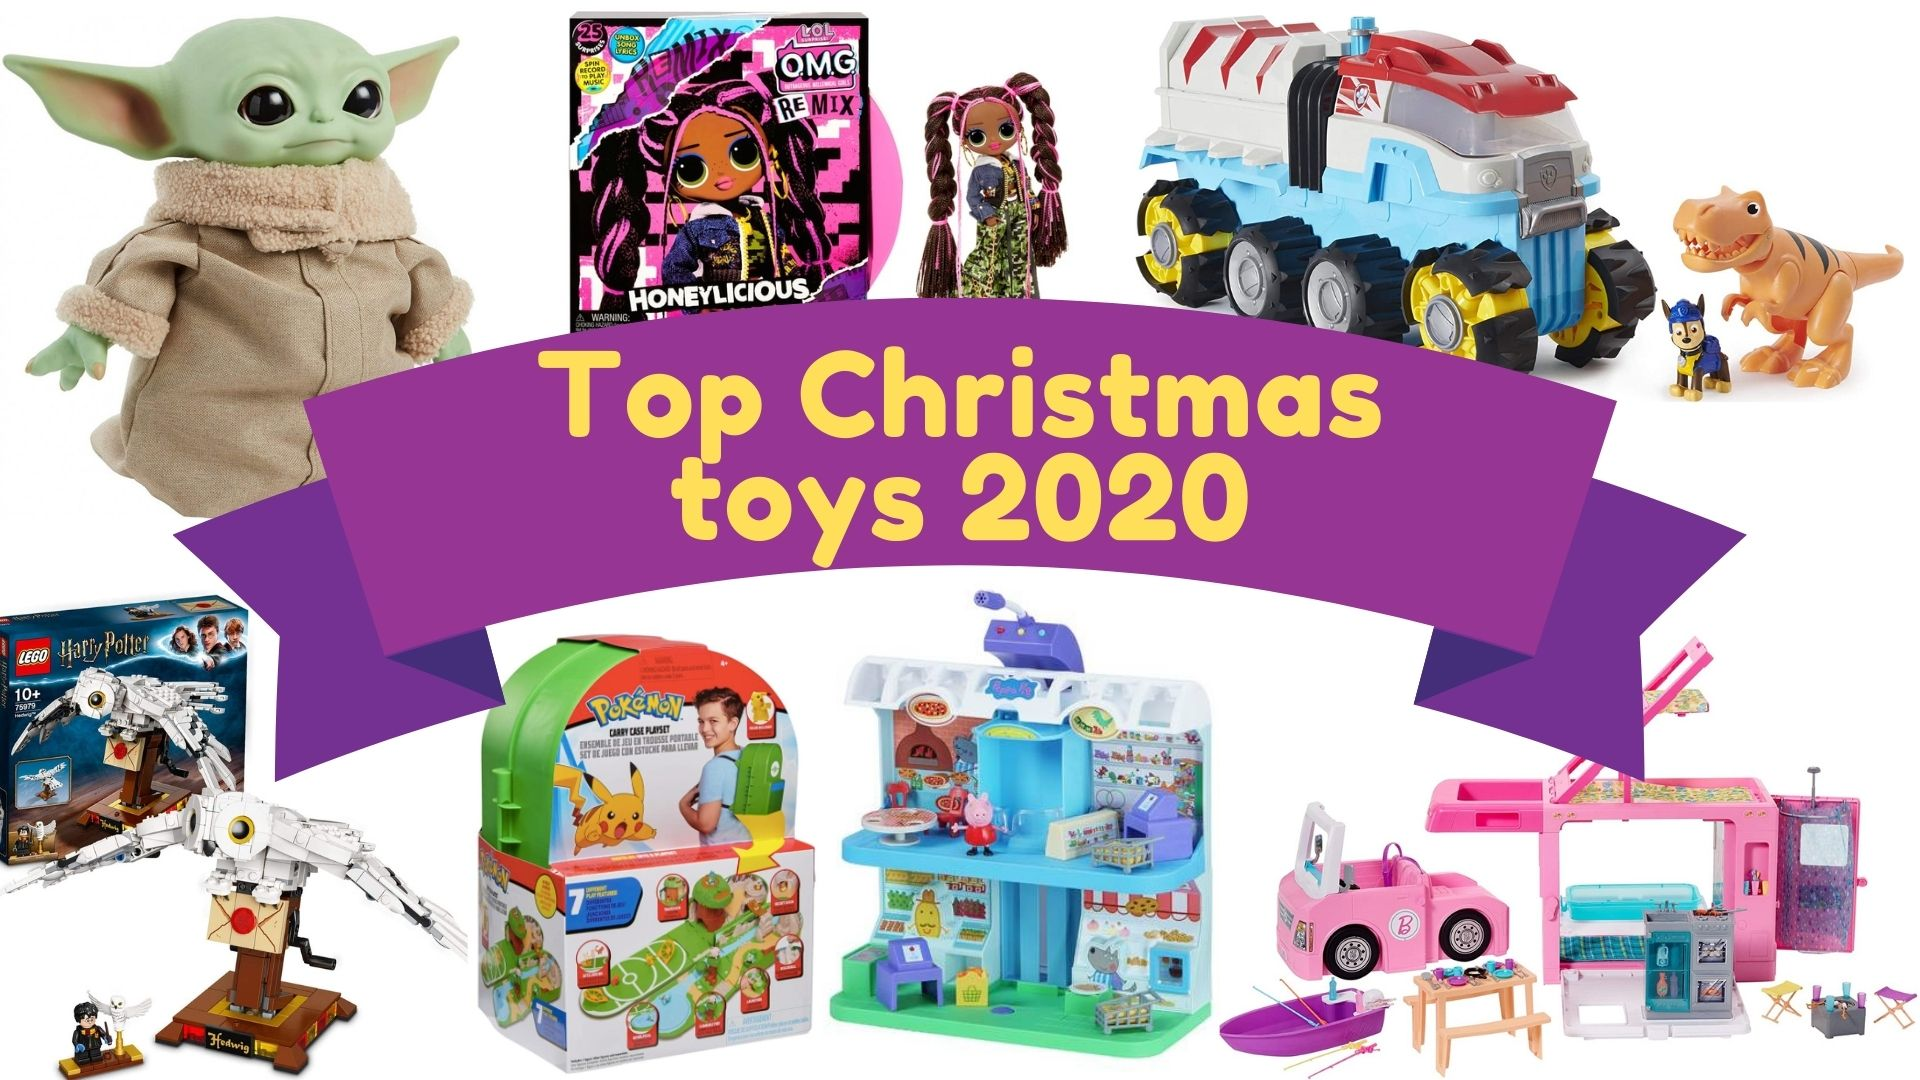 These are the best toys you can find right now for Christmas 2020